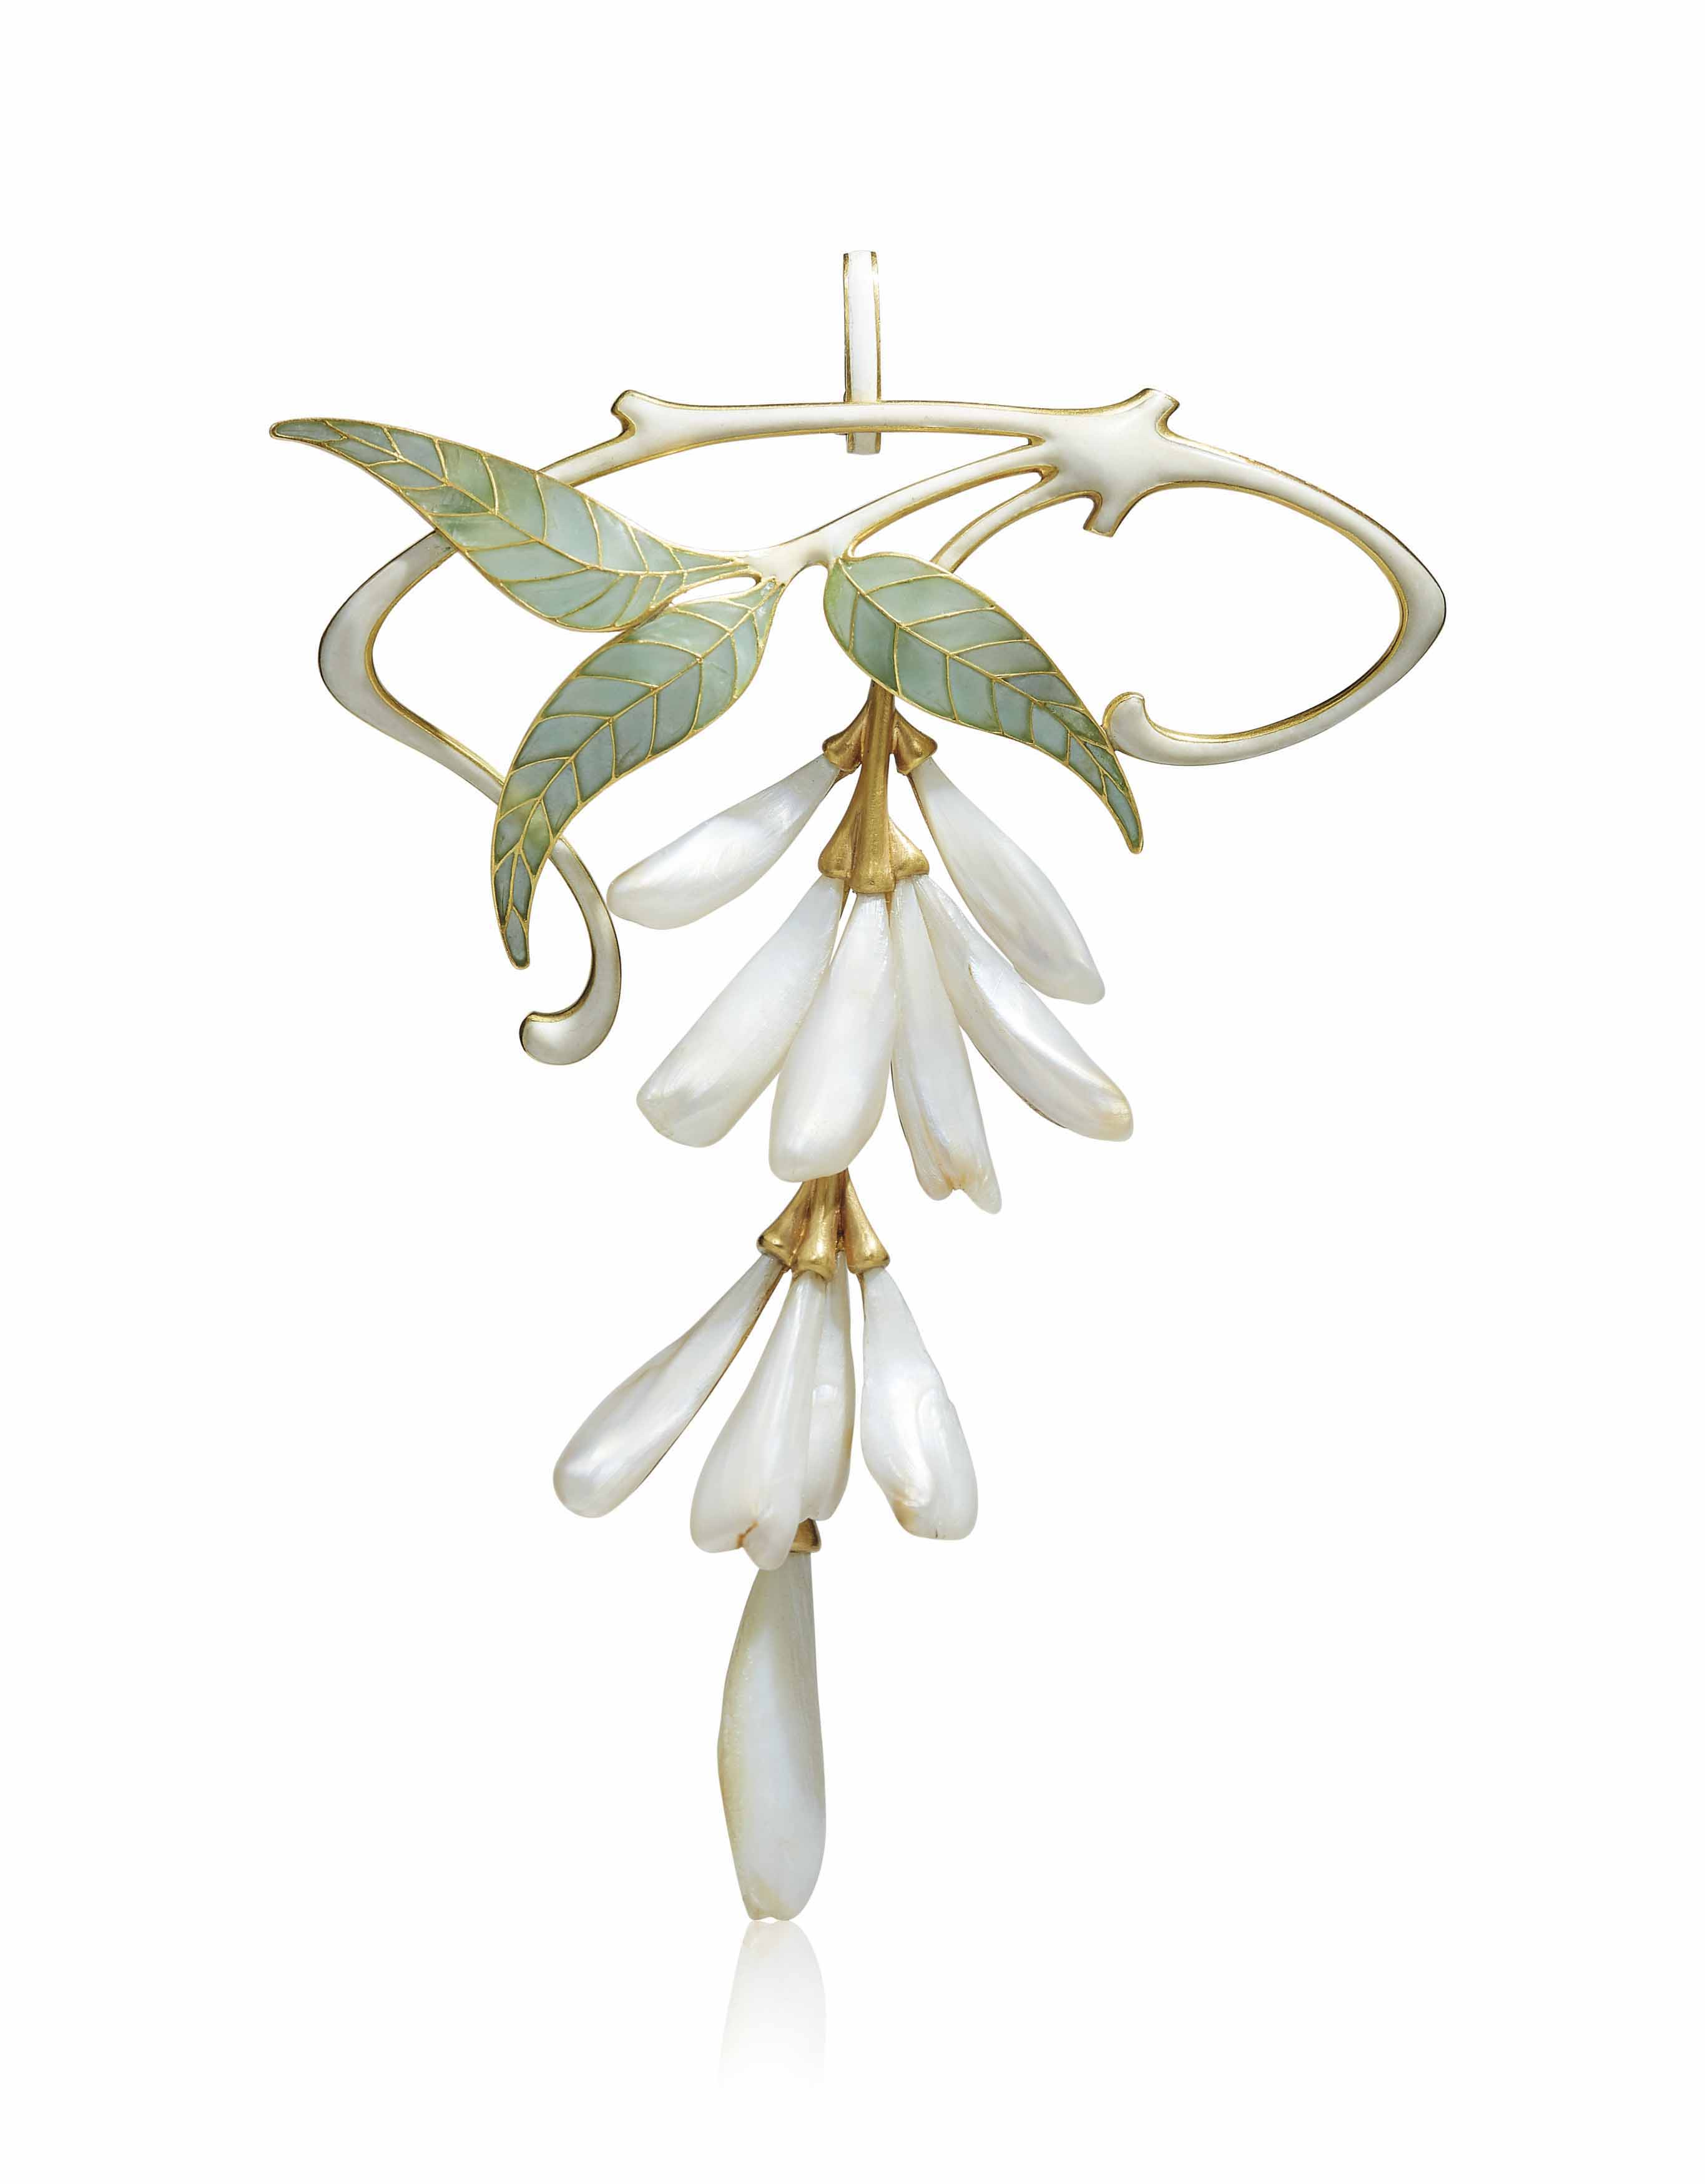 AN ART NOUVEAU PEARL AND ENAMEL PENDANT/BROOCH, BY HENRI VEVER